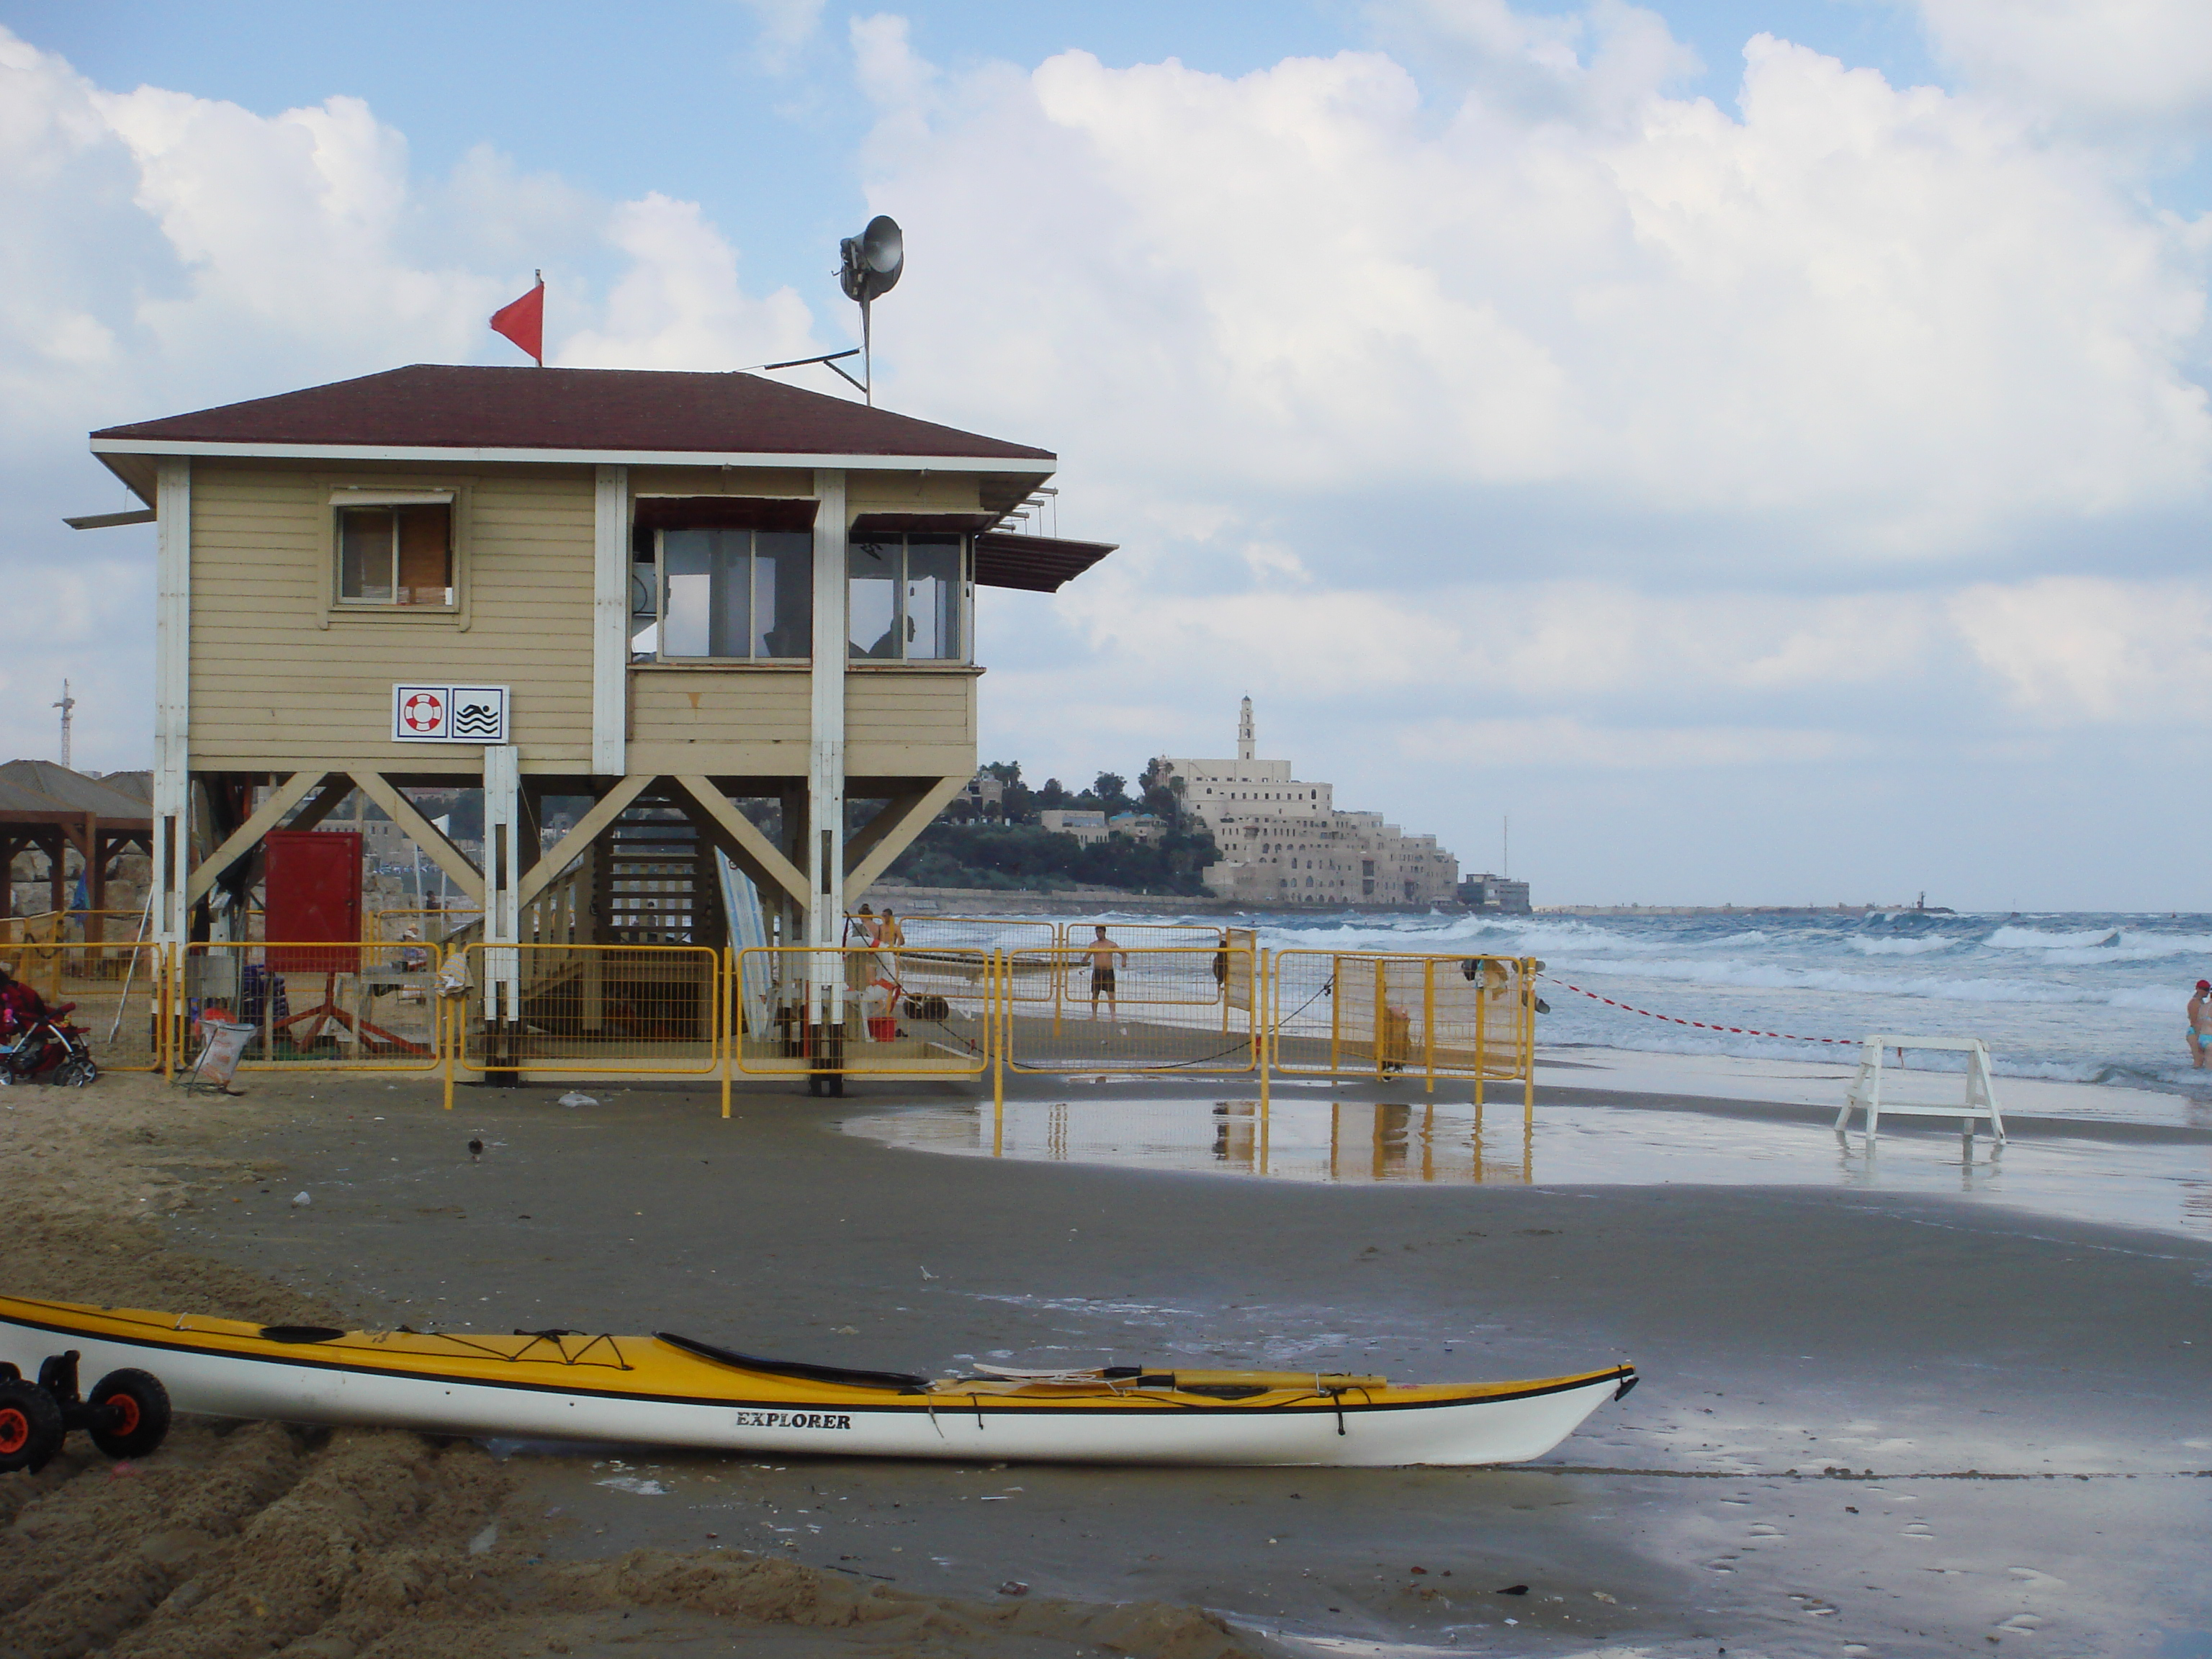 Tel Aviv seaside, lifeguard station